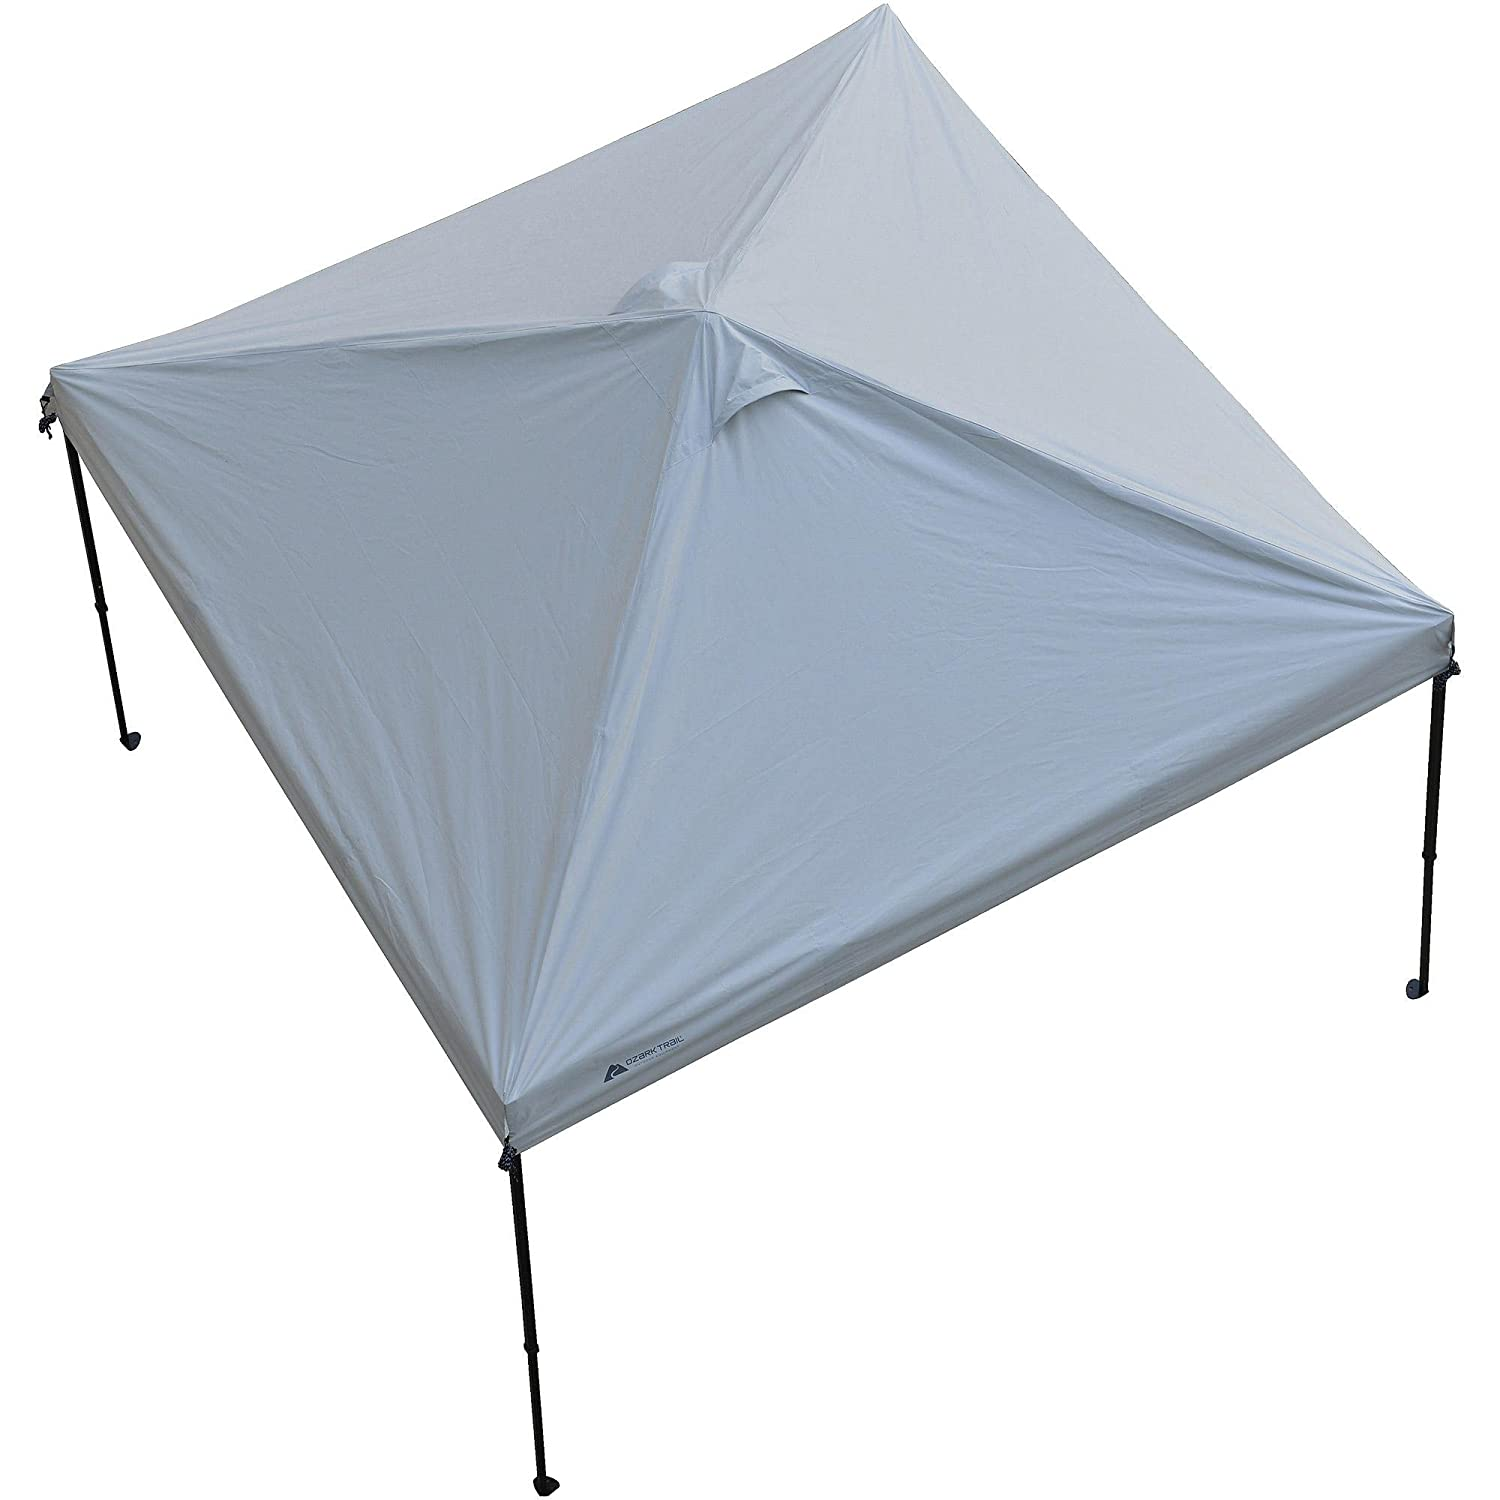 Amazon.com Ozark Trail 10ft x 10ft Gazebo Top (replacement top only Canopy frame not included) Garden u0026 Outdoor  sc 1 st  Amazon.com & Amazon.com: Ozark Trail 10ft x 10ft Gazebo Top (replacement top ...